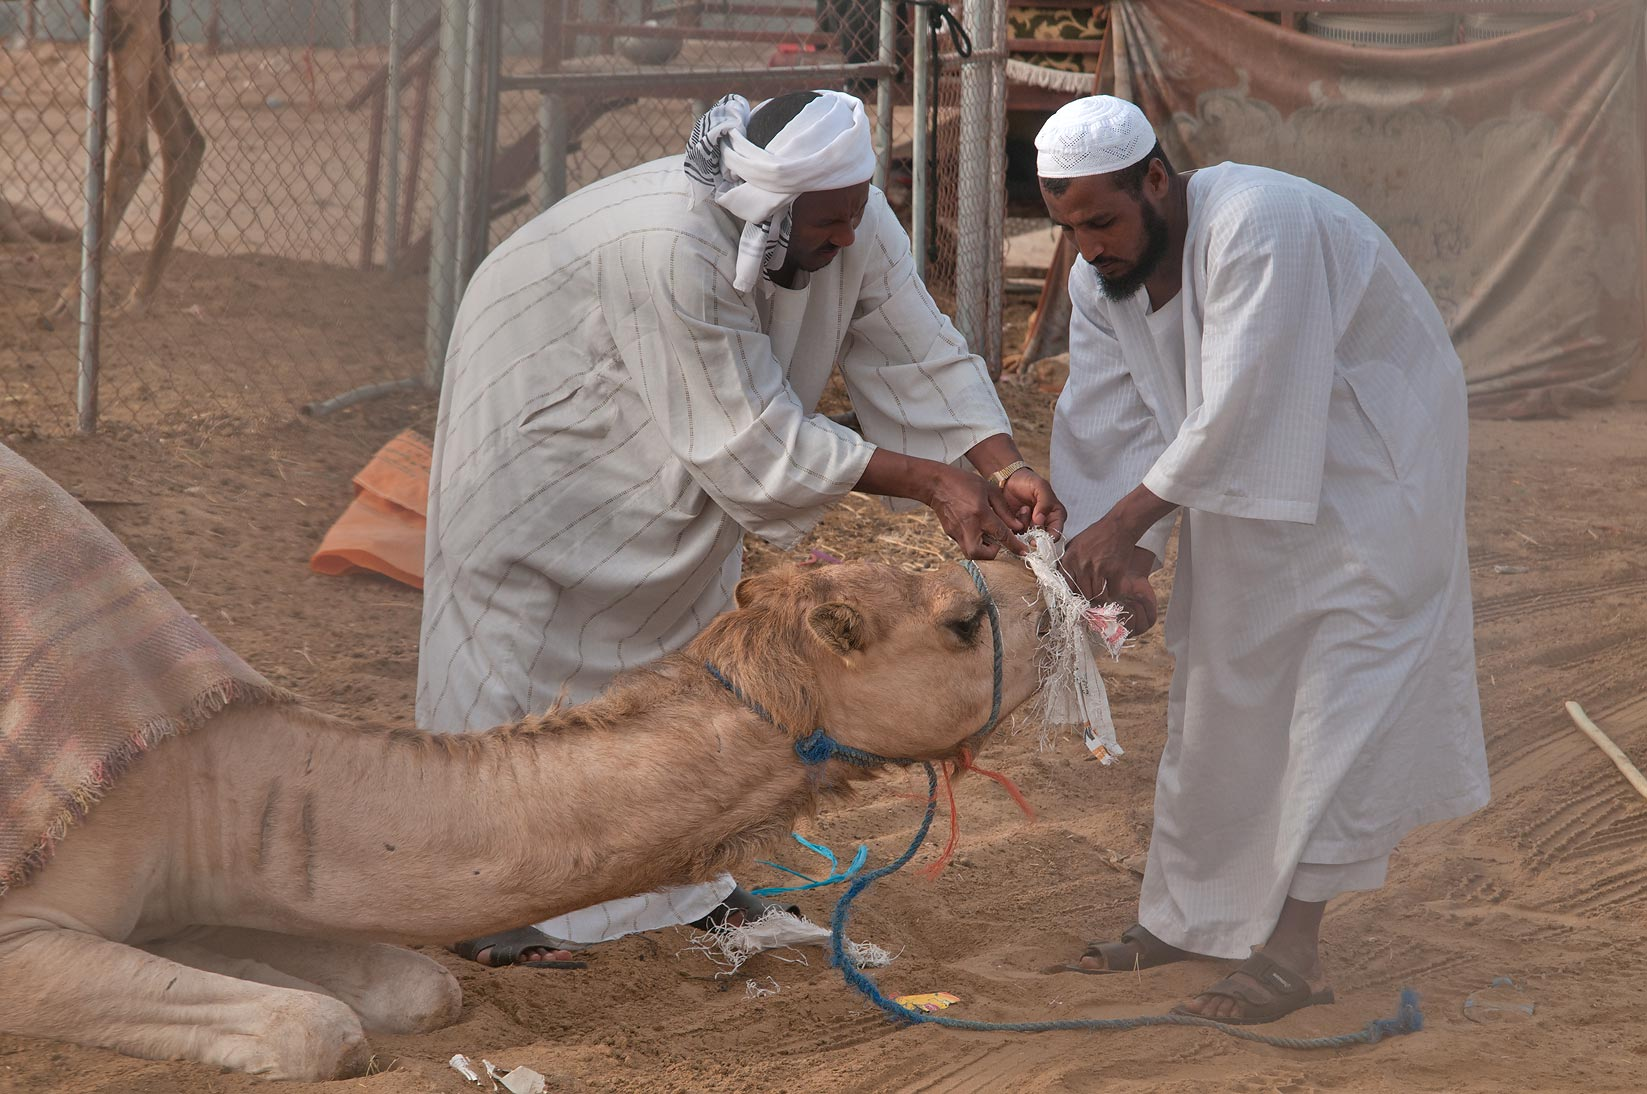 Covering the animal's mouth with a muzzle to keep...biting in Camel Market. Doha, Qatar